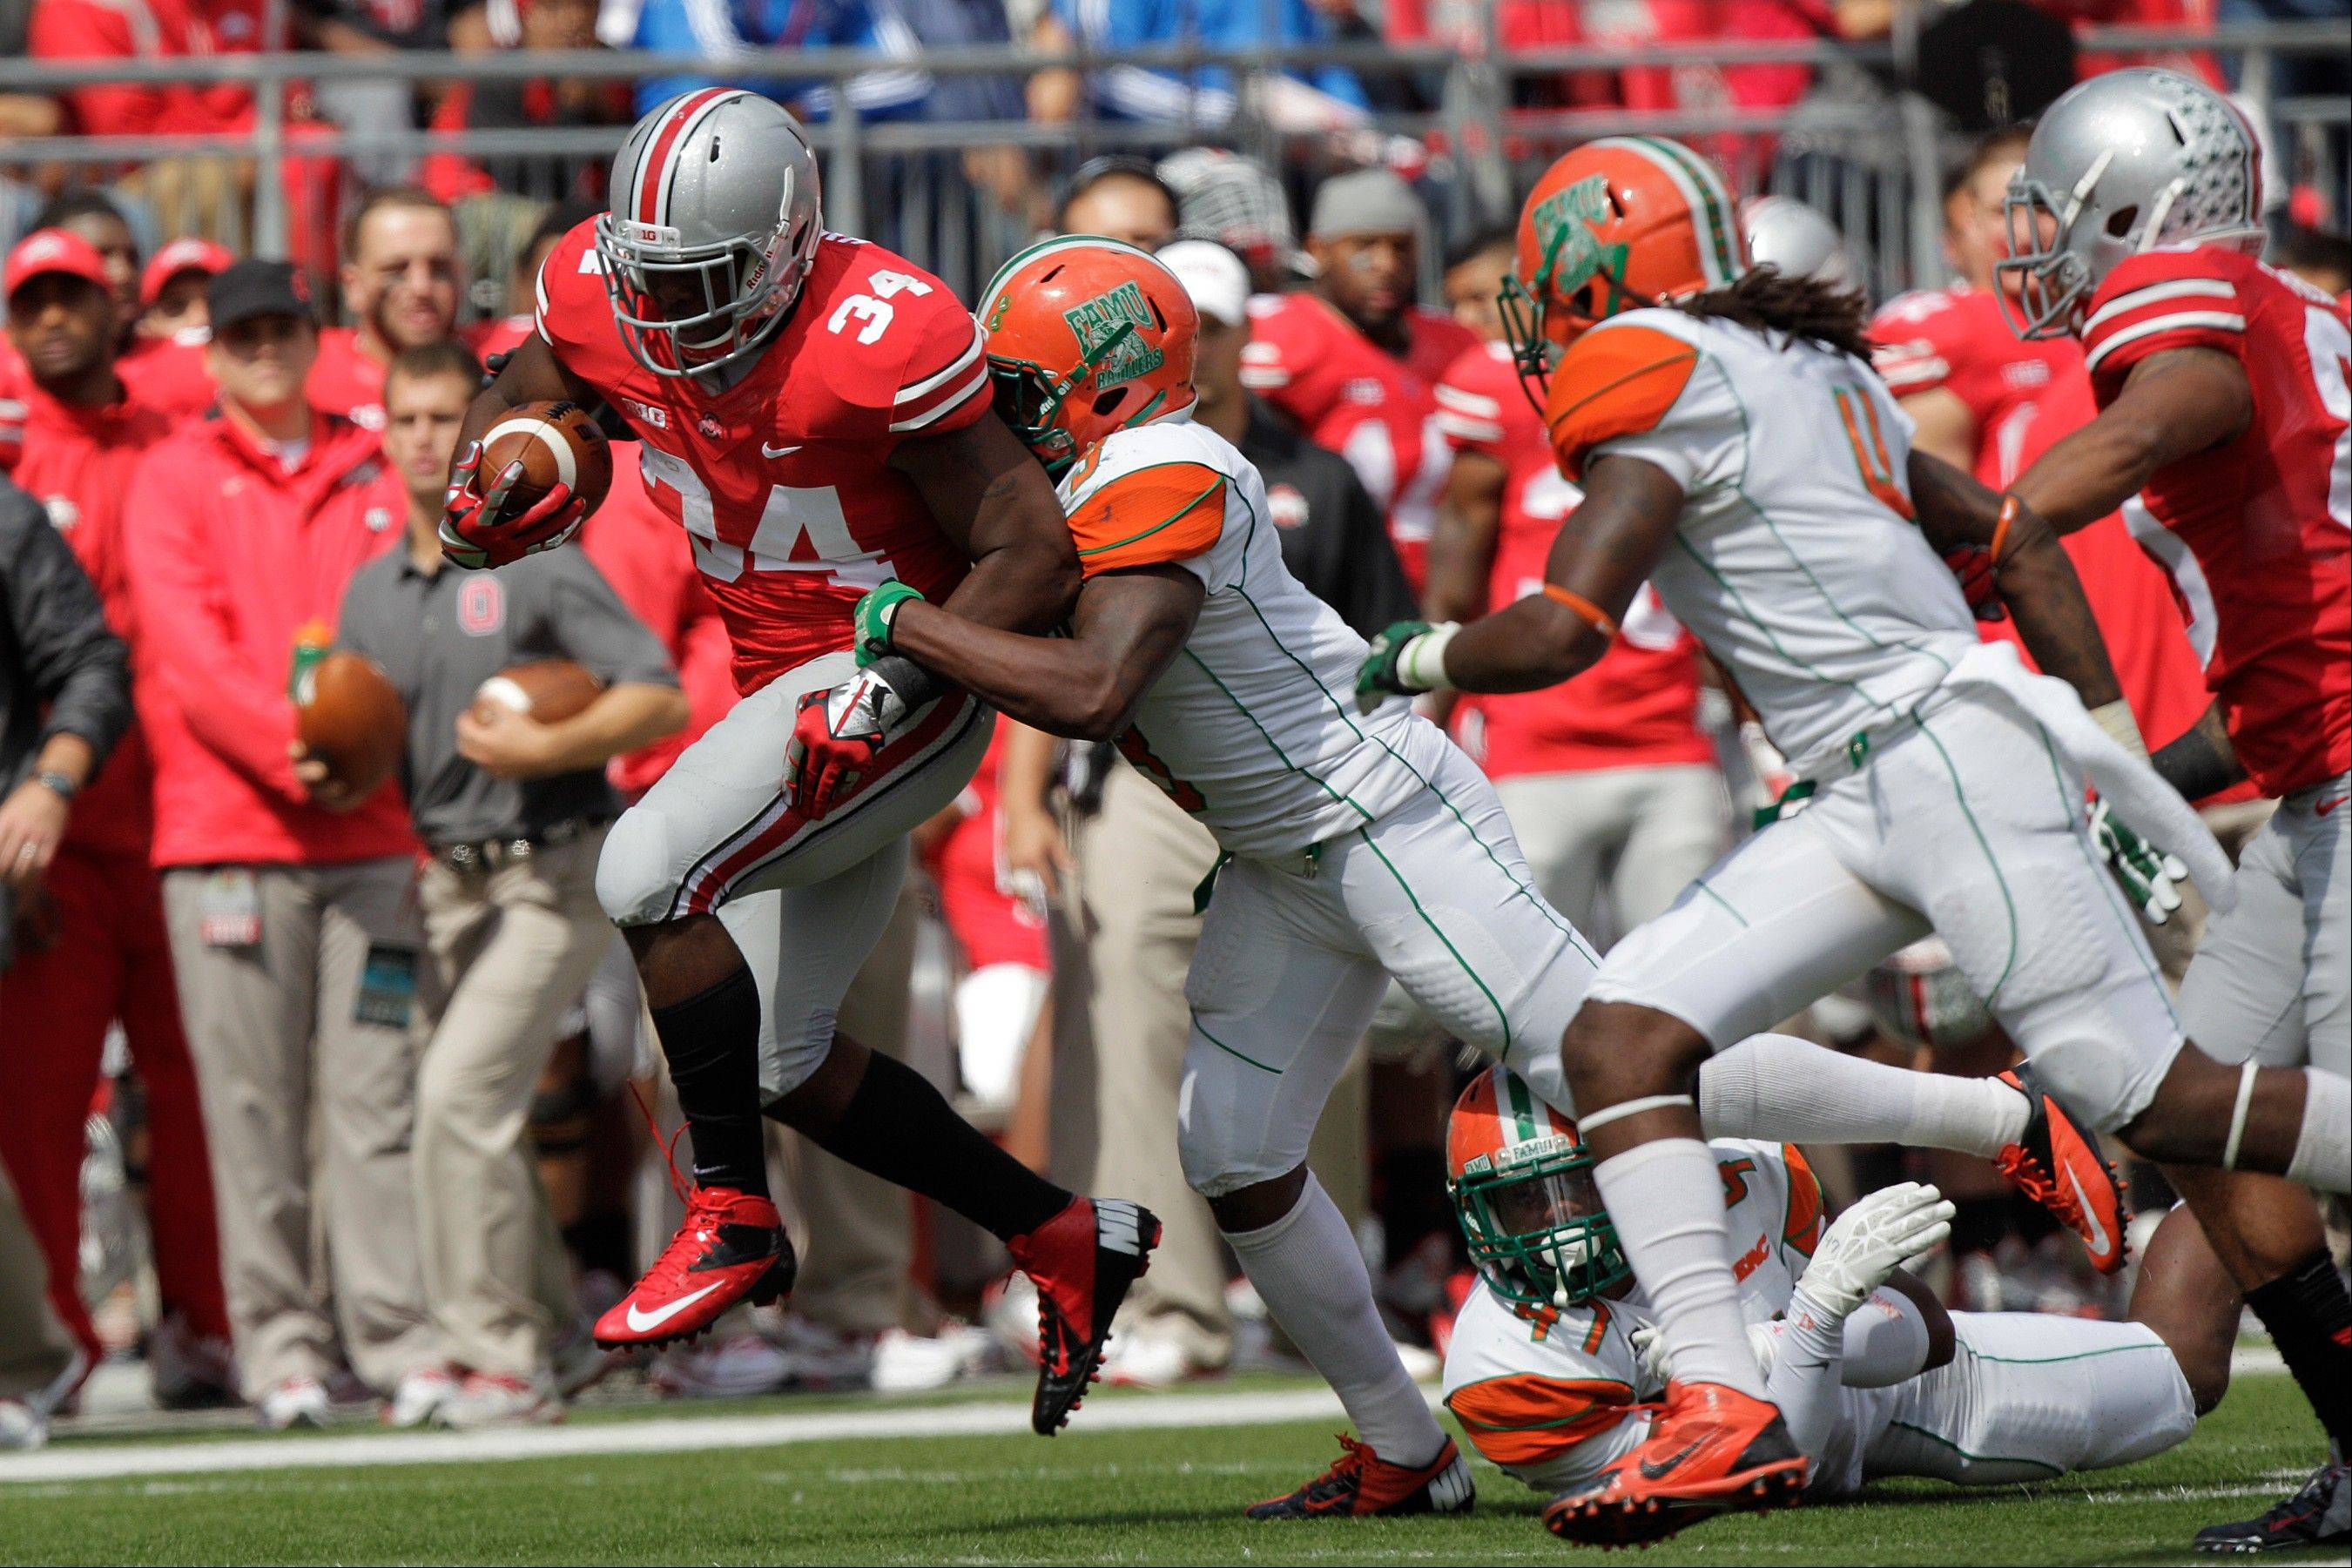 Ohio State running back Carlos Hyde gains yardage against Florida A&M during the Sept. 21 game in Columbus, Ohio. While rolling over four hapless nonconference opponents, No. 4 Ohio State has hardly been challenged.